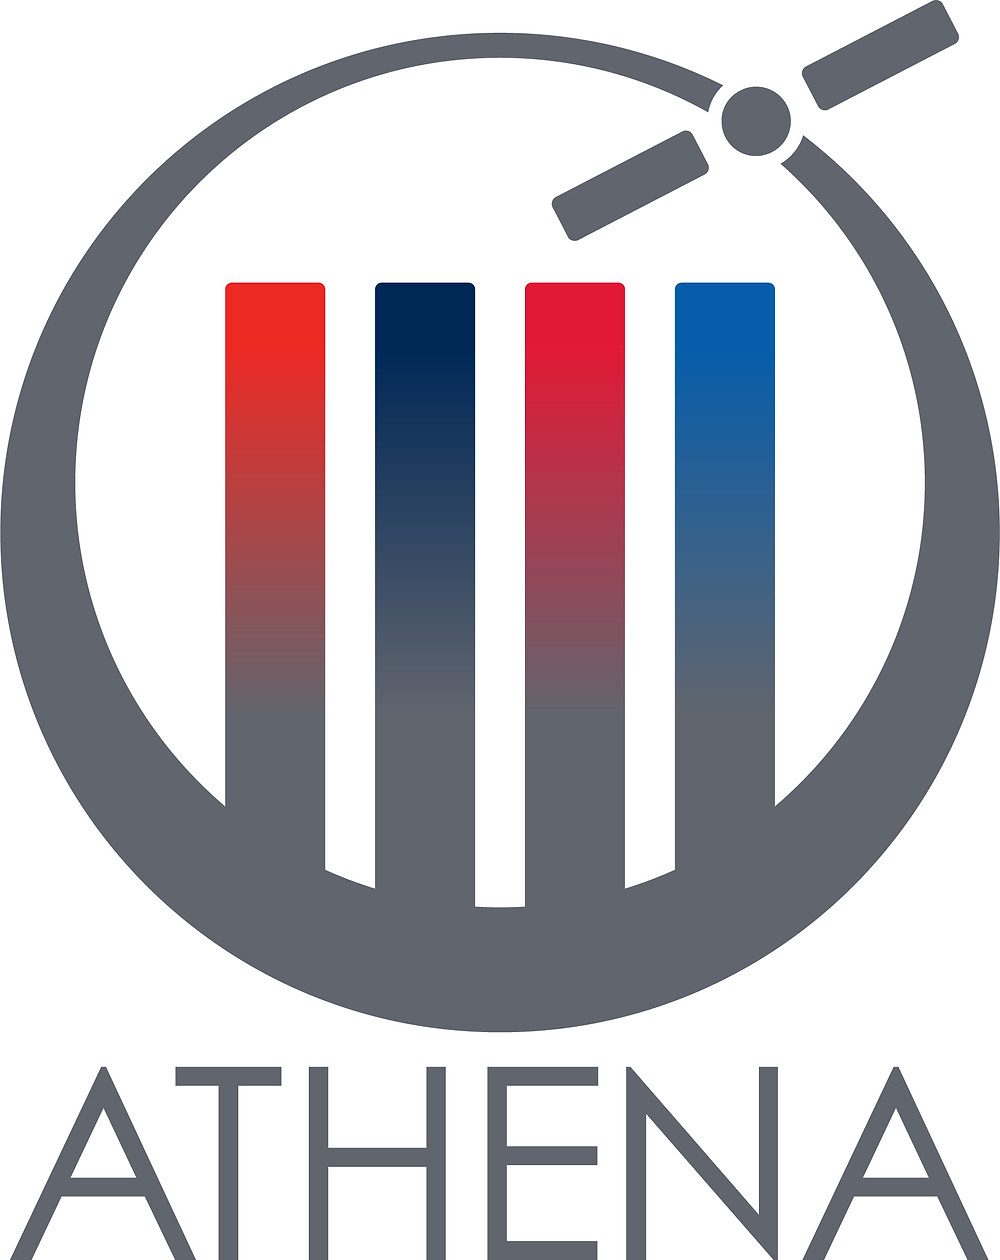 New UK-based space team launches Athena national team to boost sector and economy